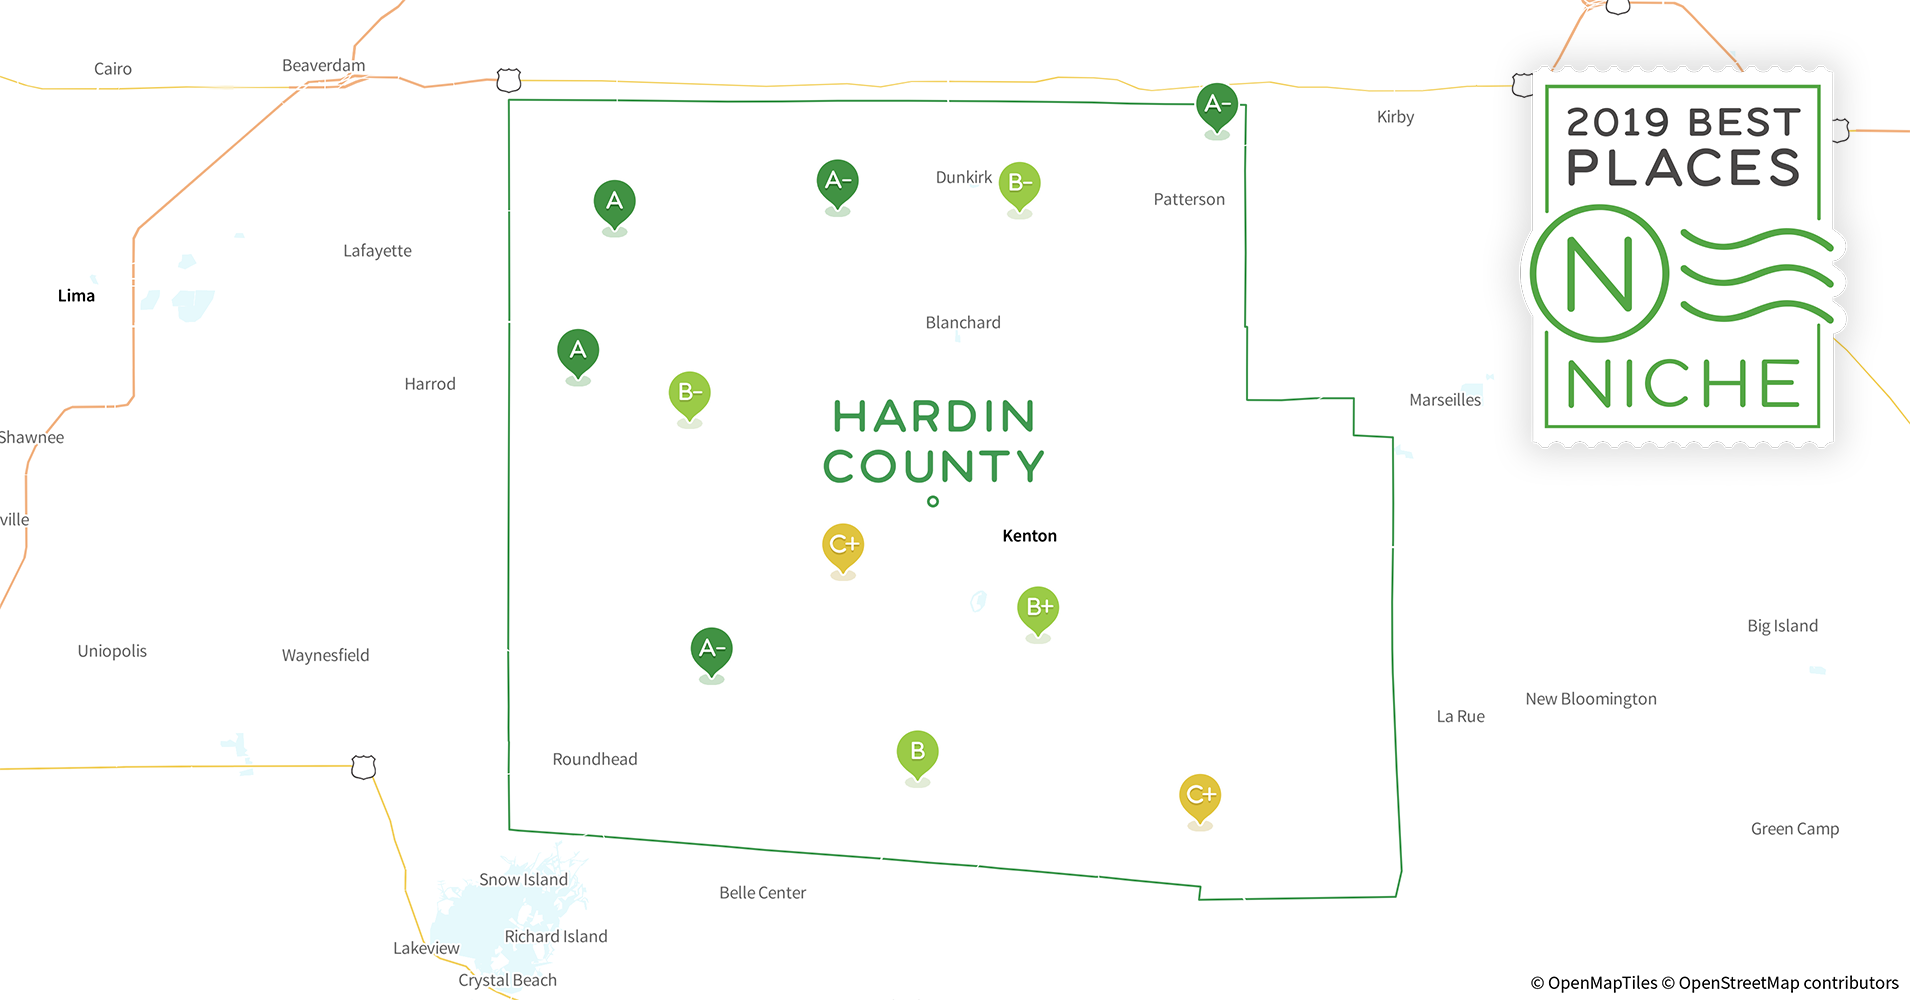 2019 Best Places to Live in Hardin County, OH - Niche